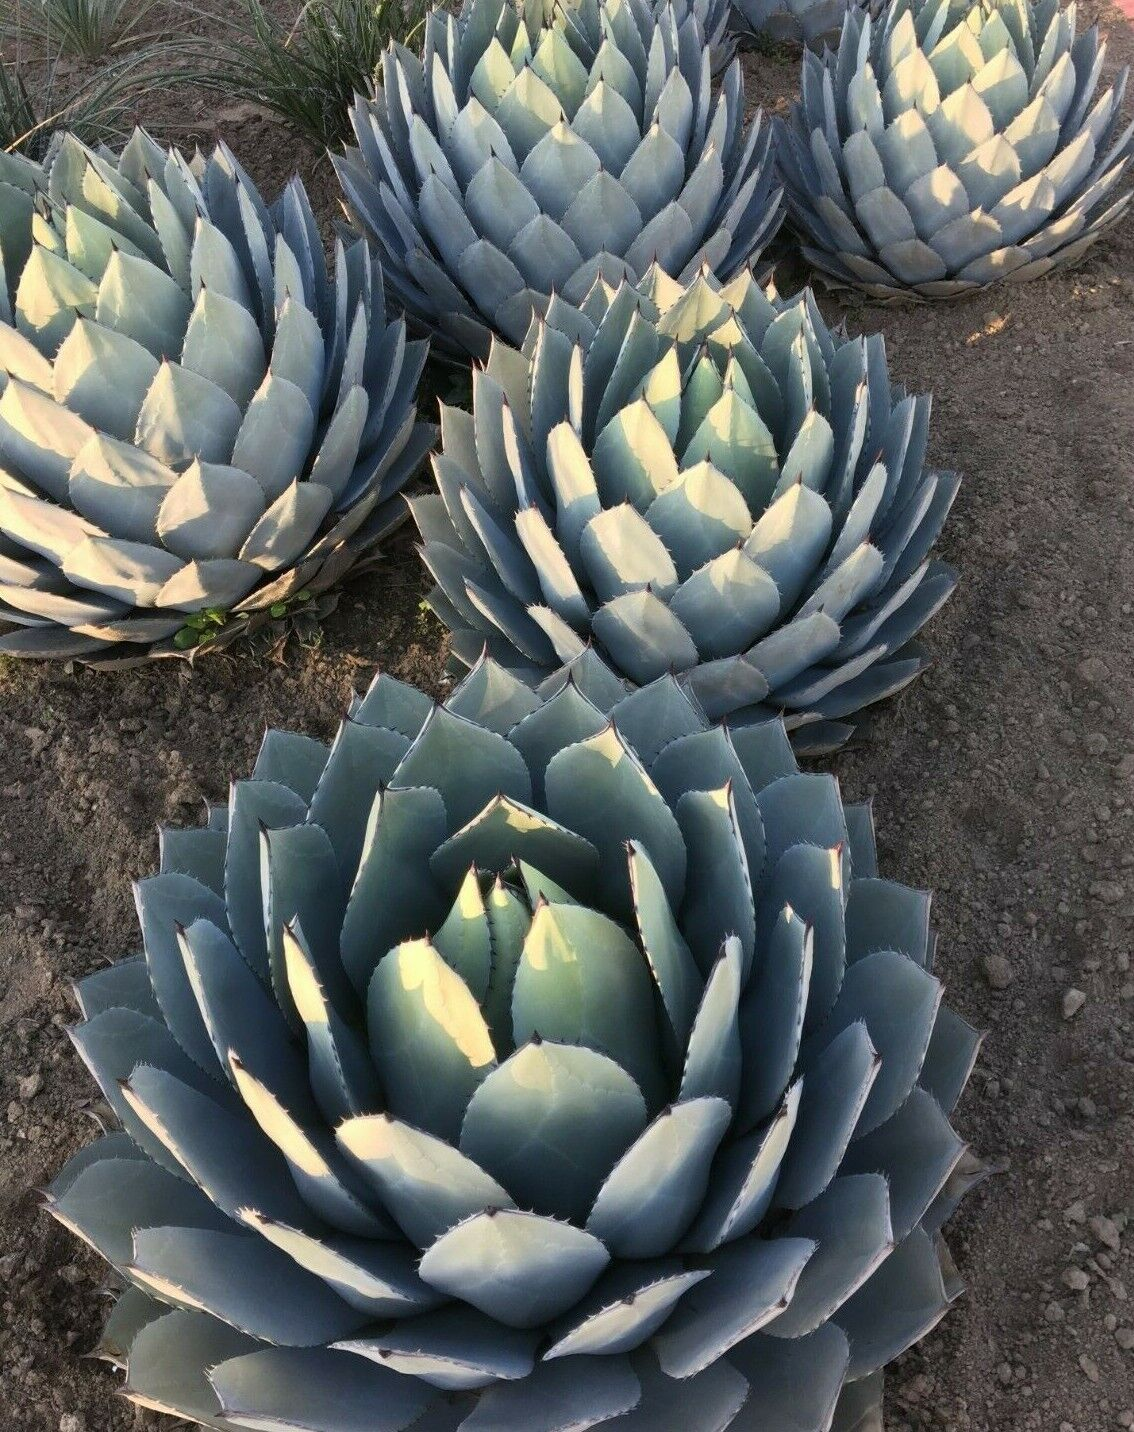 Agave Parry Christmas Gifts Small Gifts for Girlfriend at Christmas